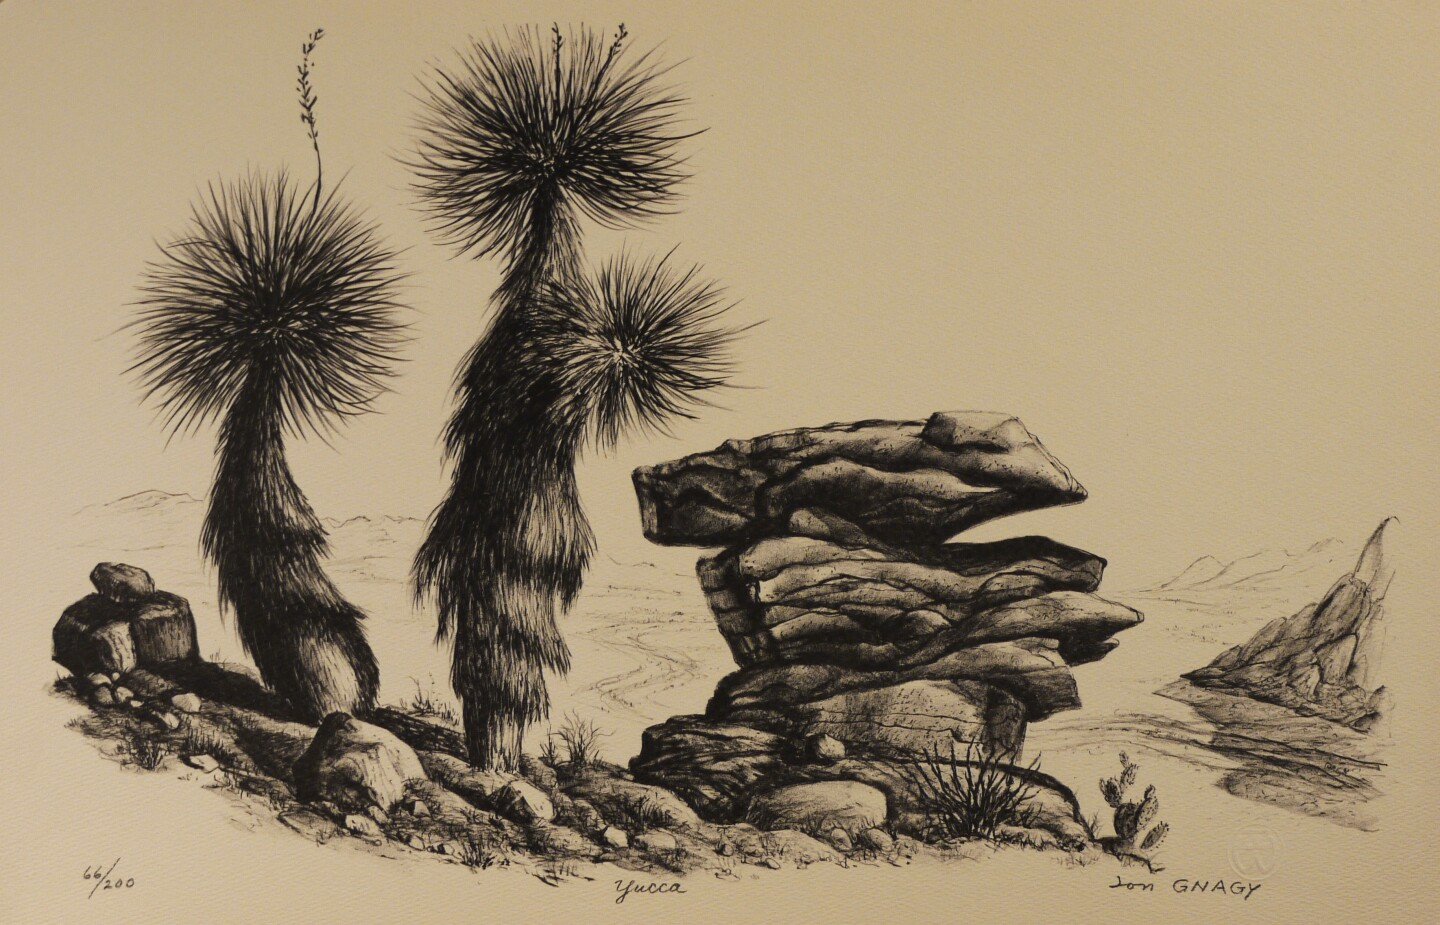 A sketch by Jon Gnagy depicting yucca plants and a pile of rocks. It is in black and white.